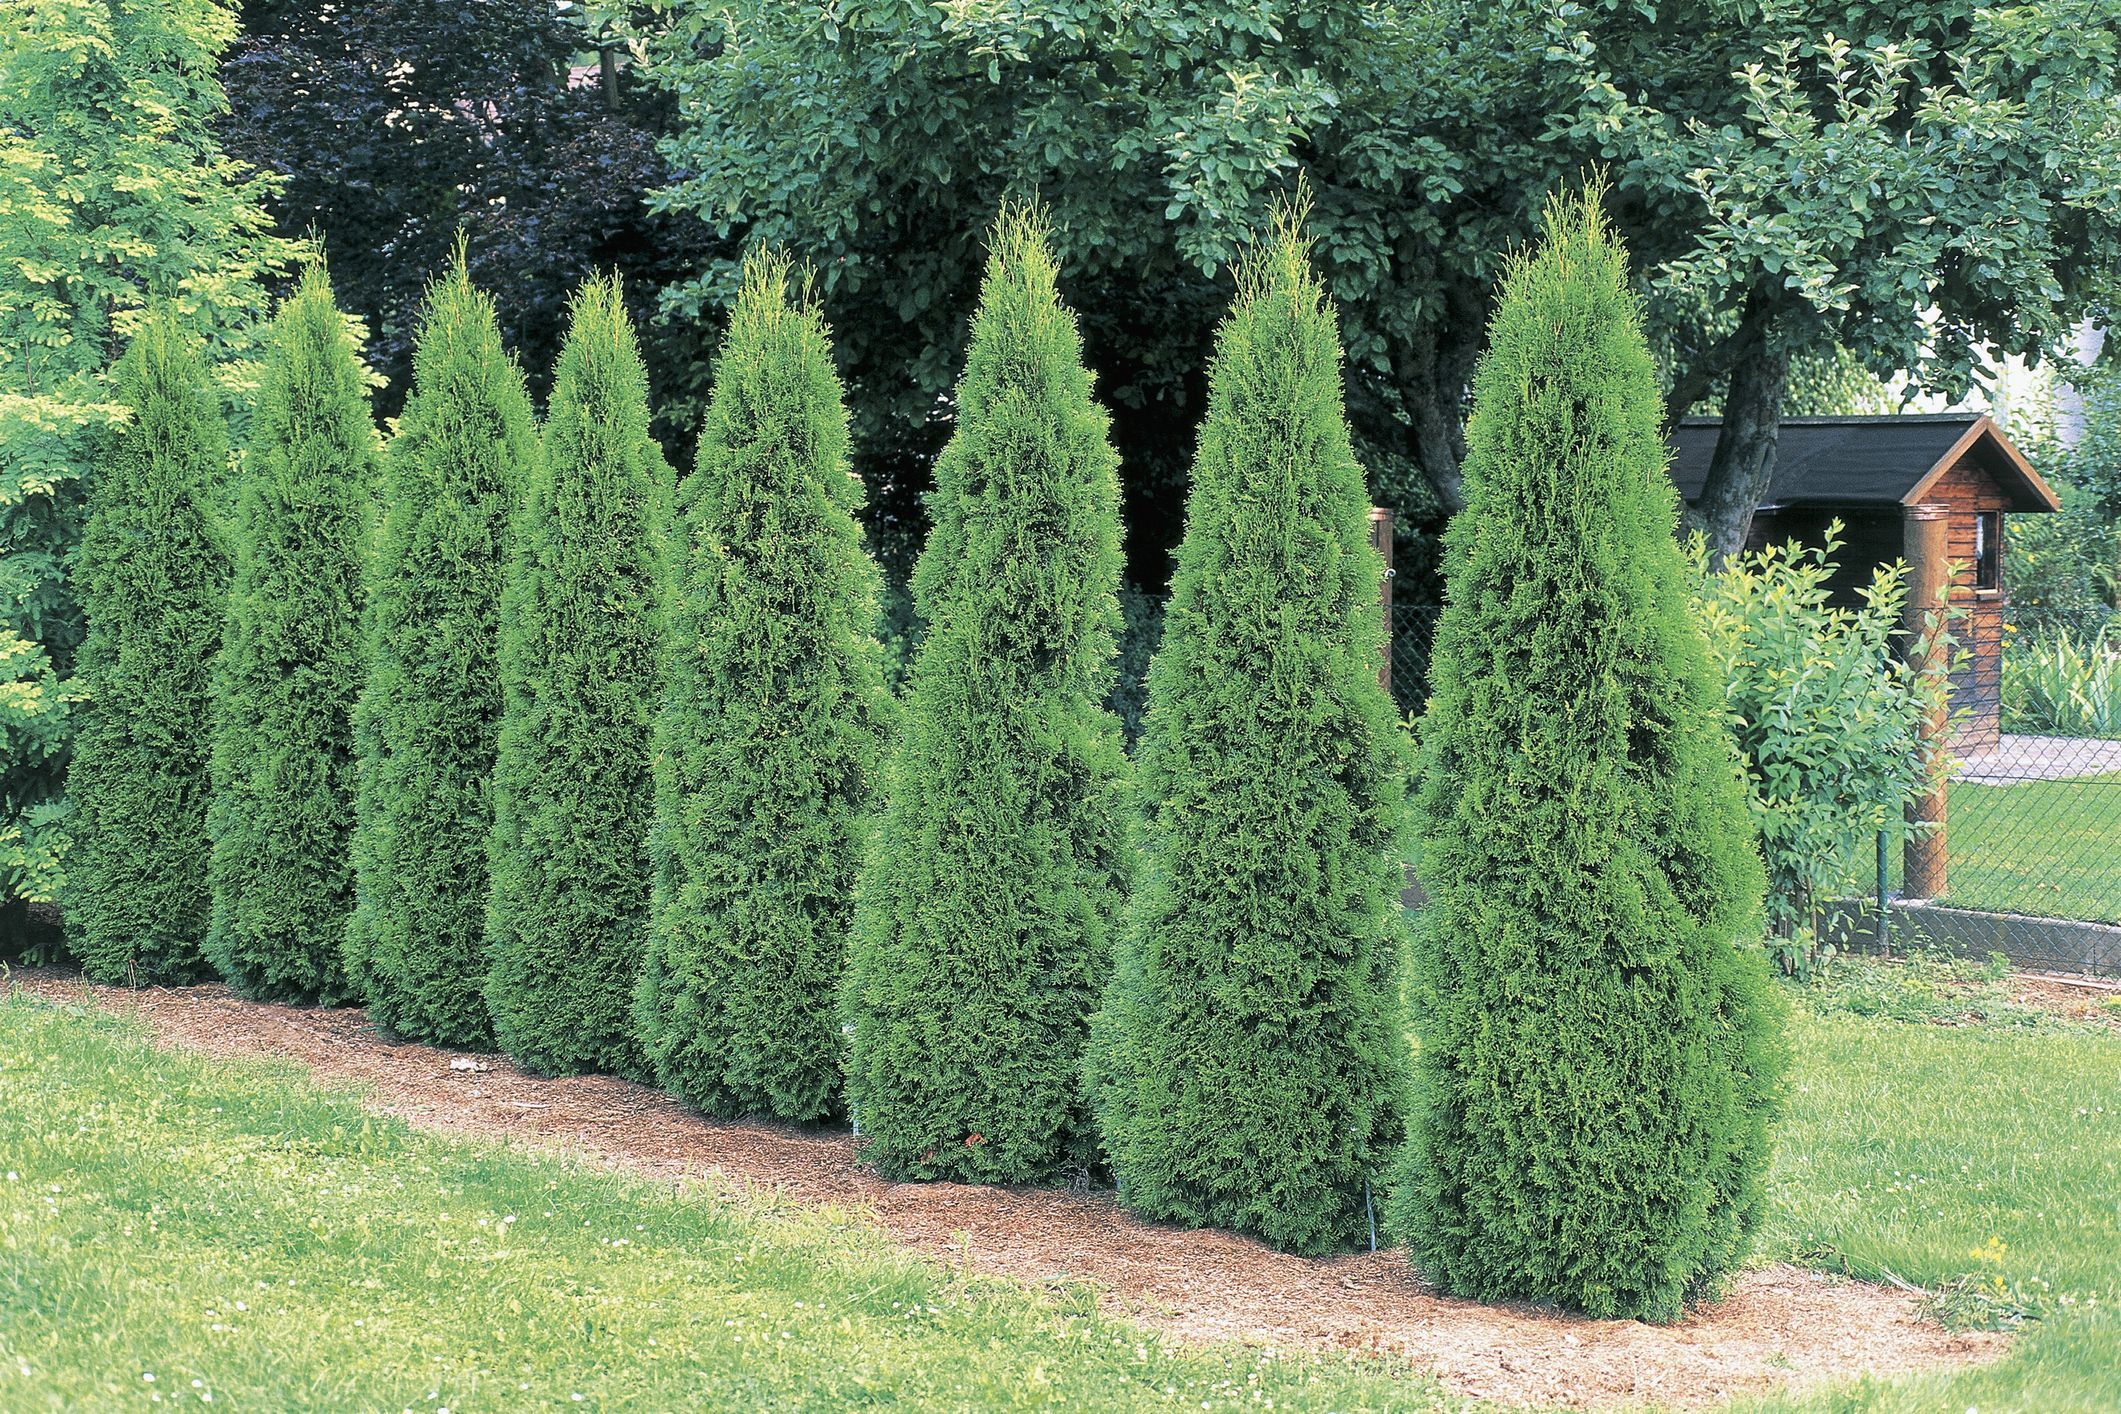 How to grow emerald green arborvitae trees